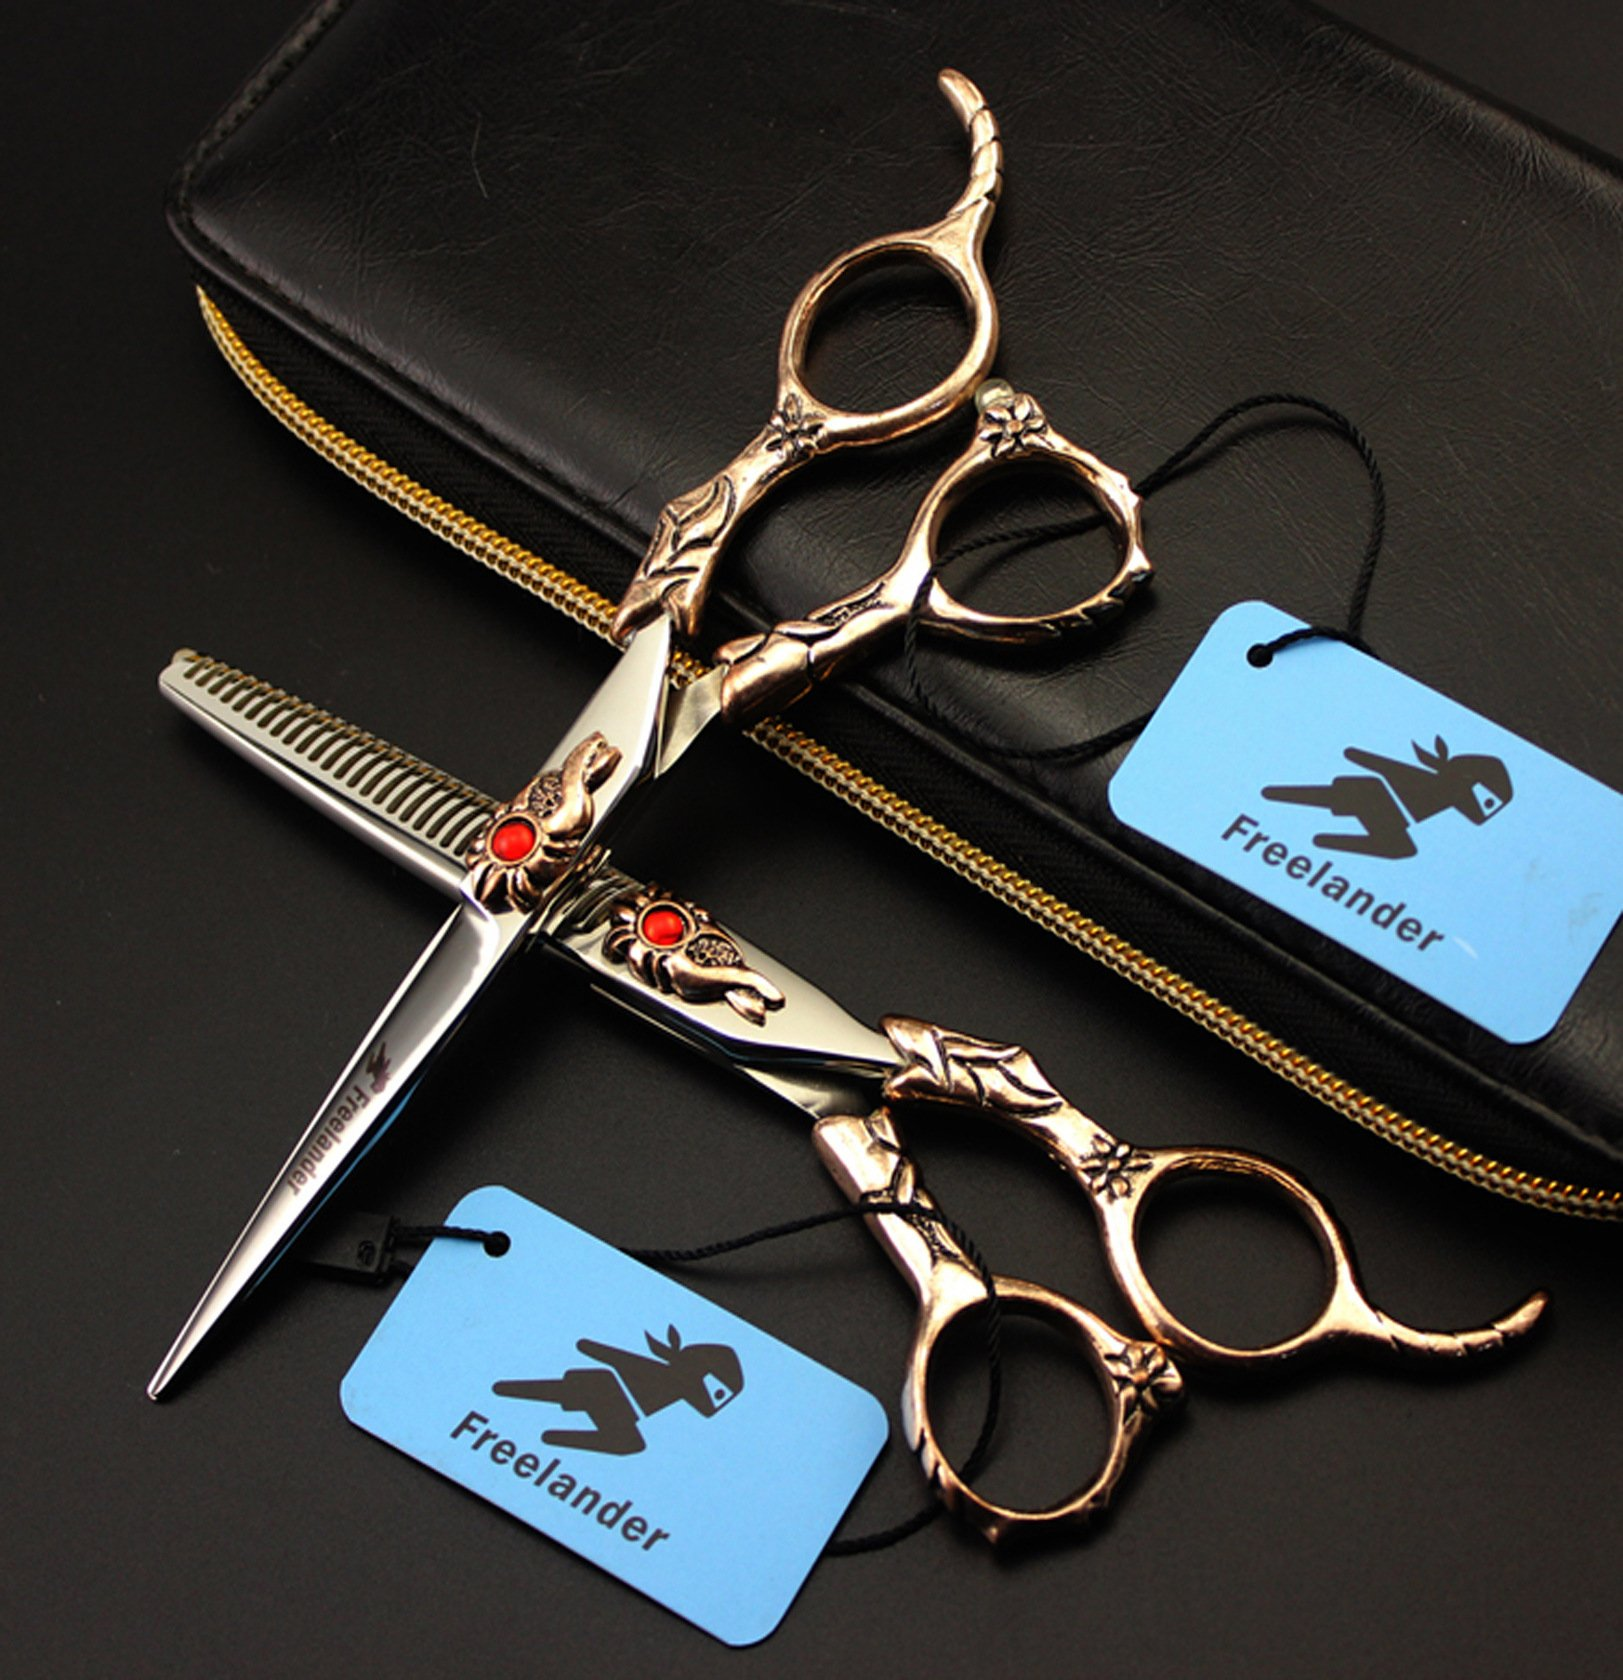 Professional Hair Cutting Scissors And Shears Barber Hairdressing Scissors Straight Vintage Design Red Rhinestone Men And Women Hair Cutting Tools Top 440C Steel